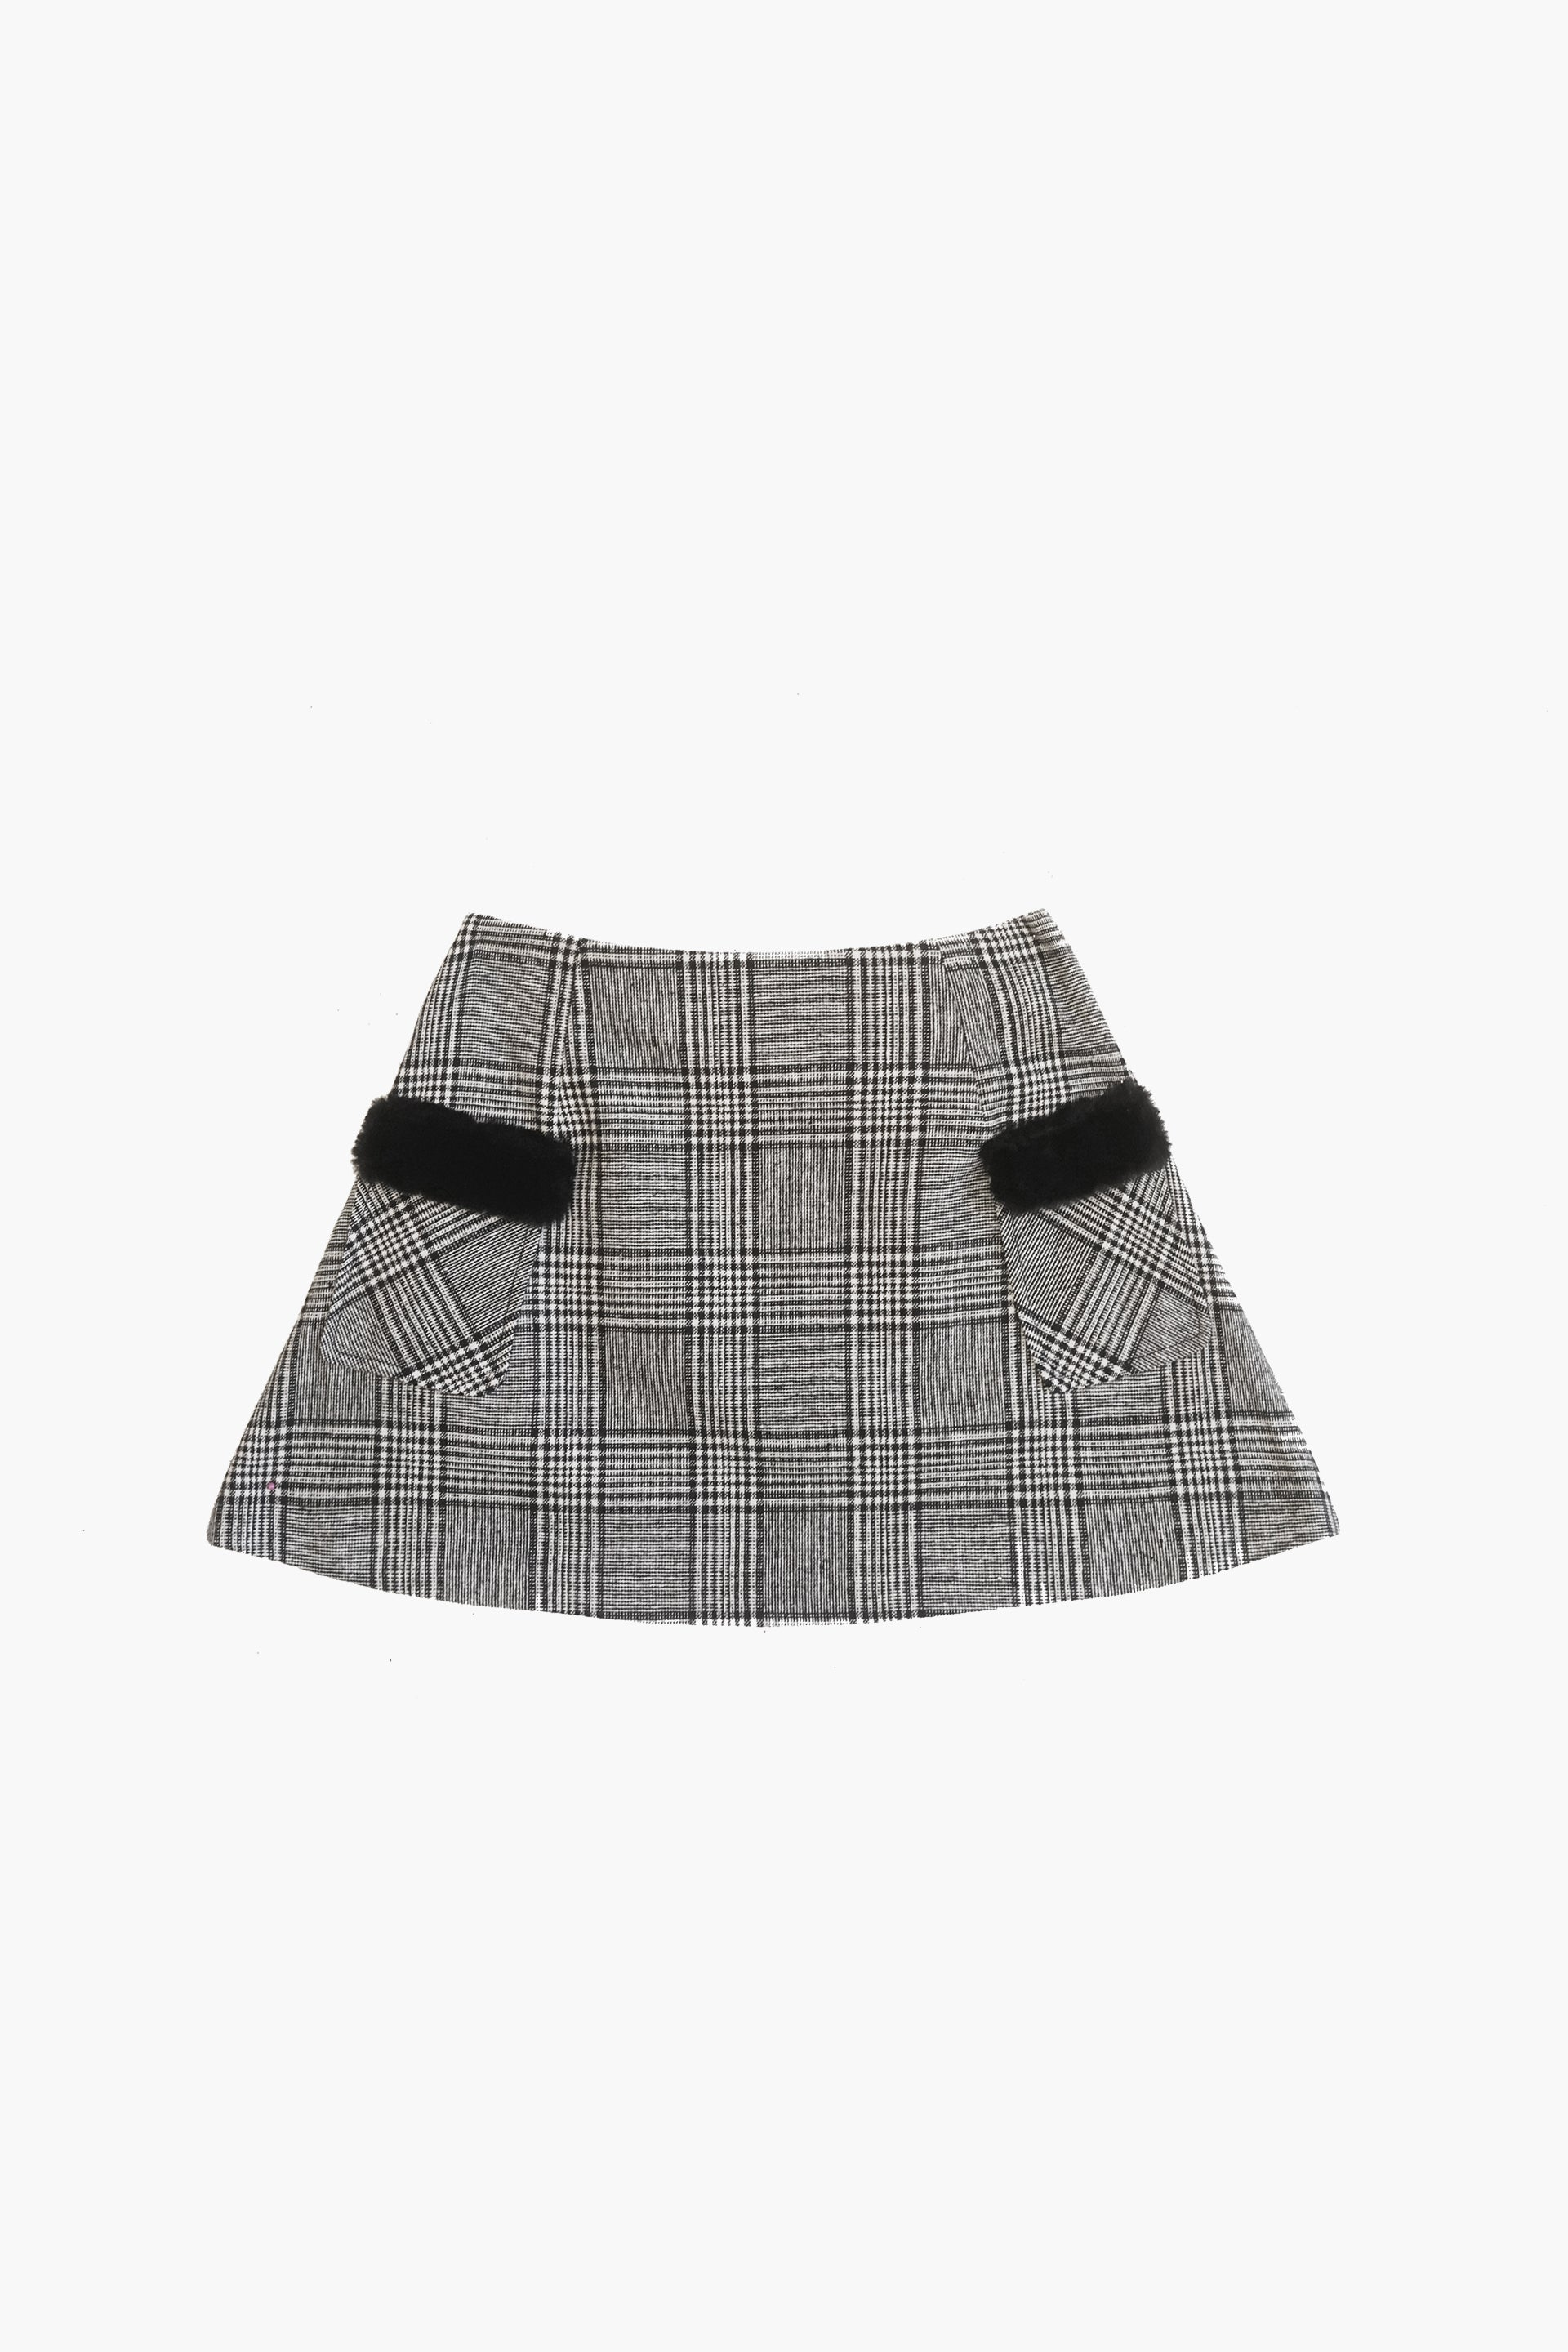 Dionne Mini Skirt-bottoms-Petite Studio